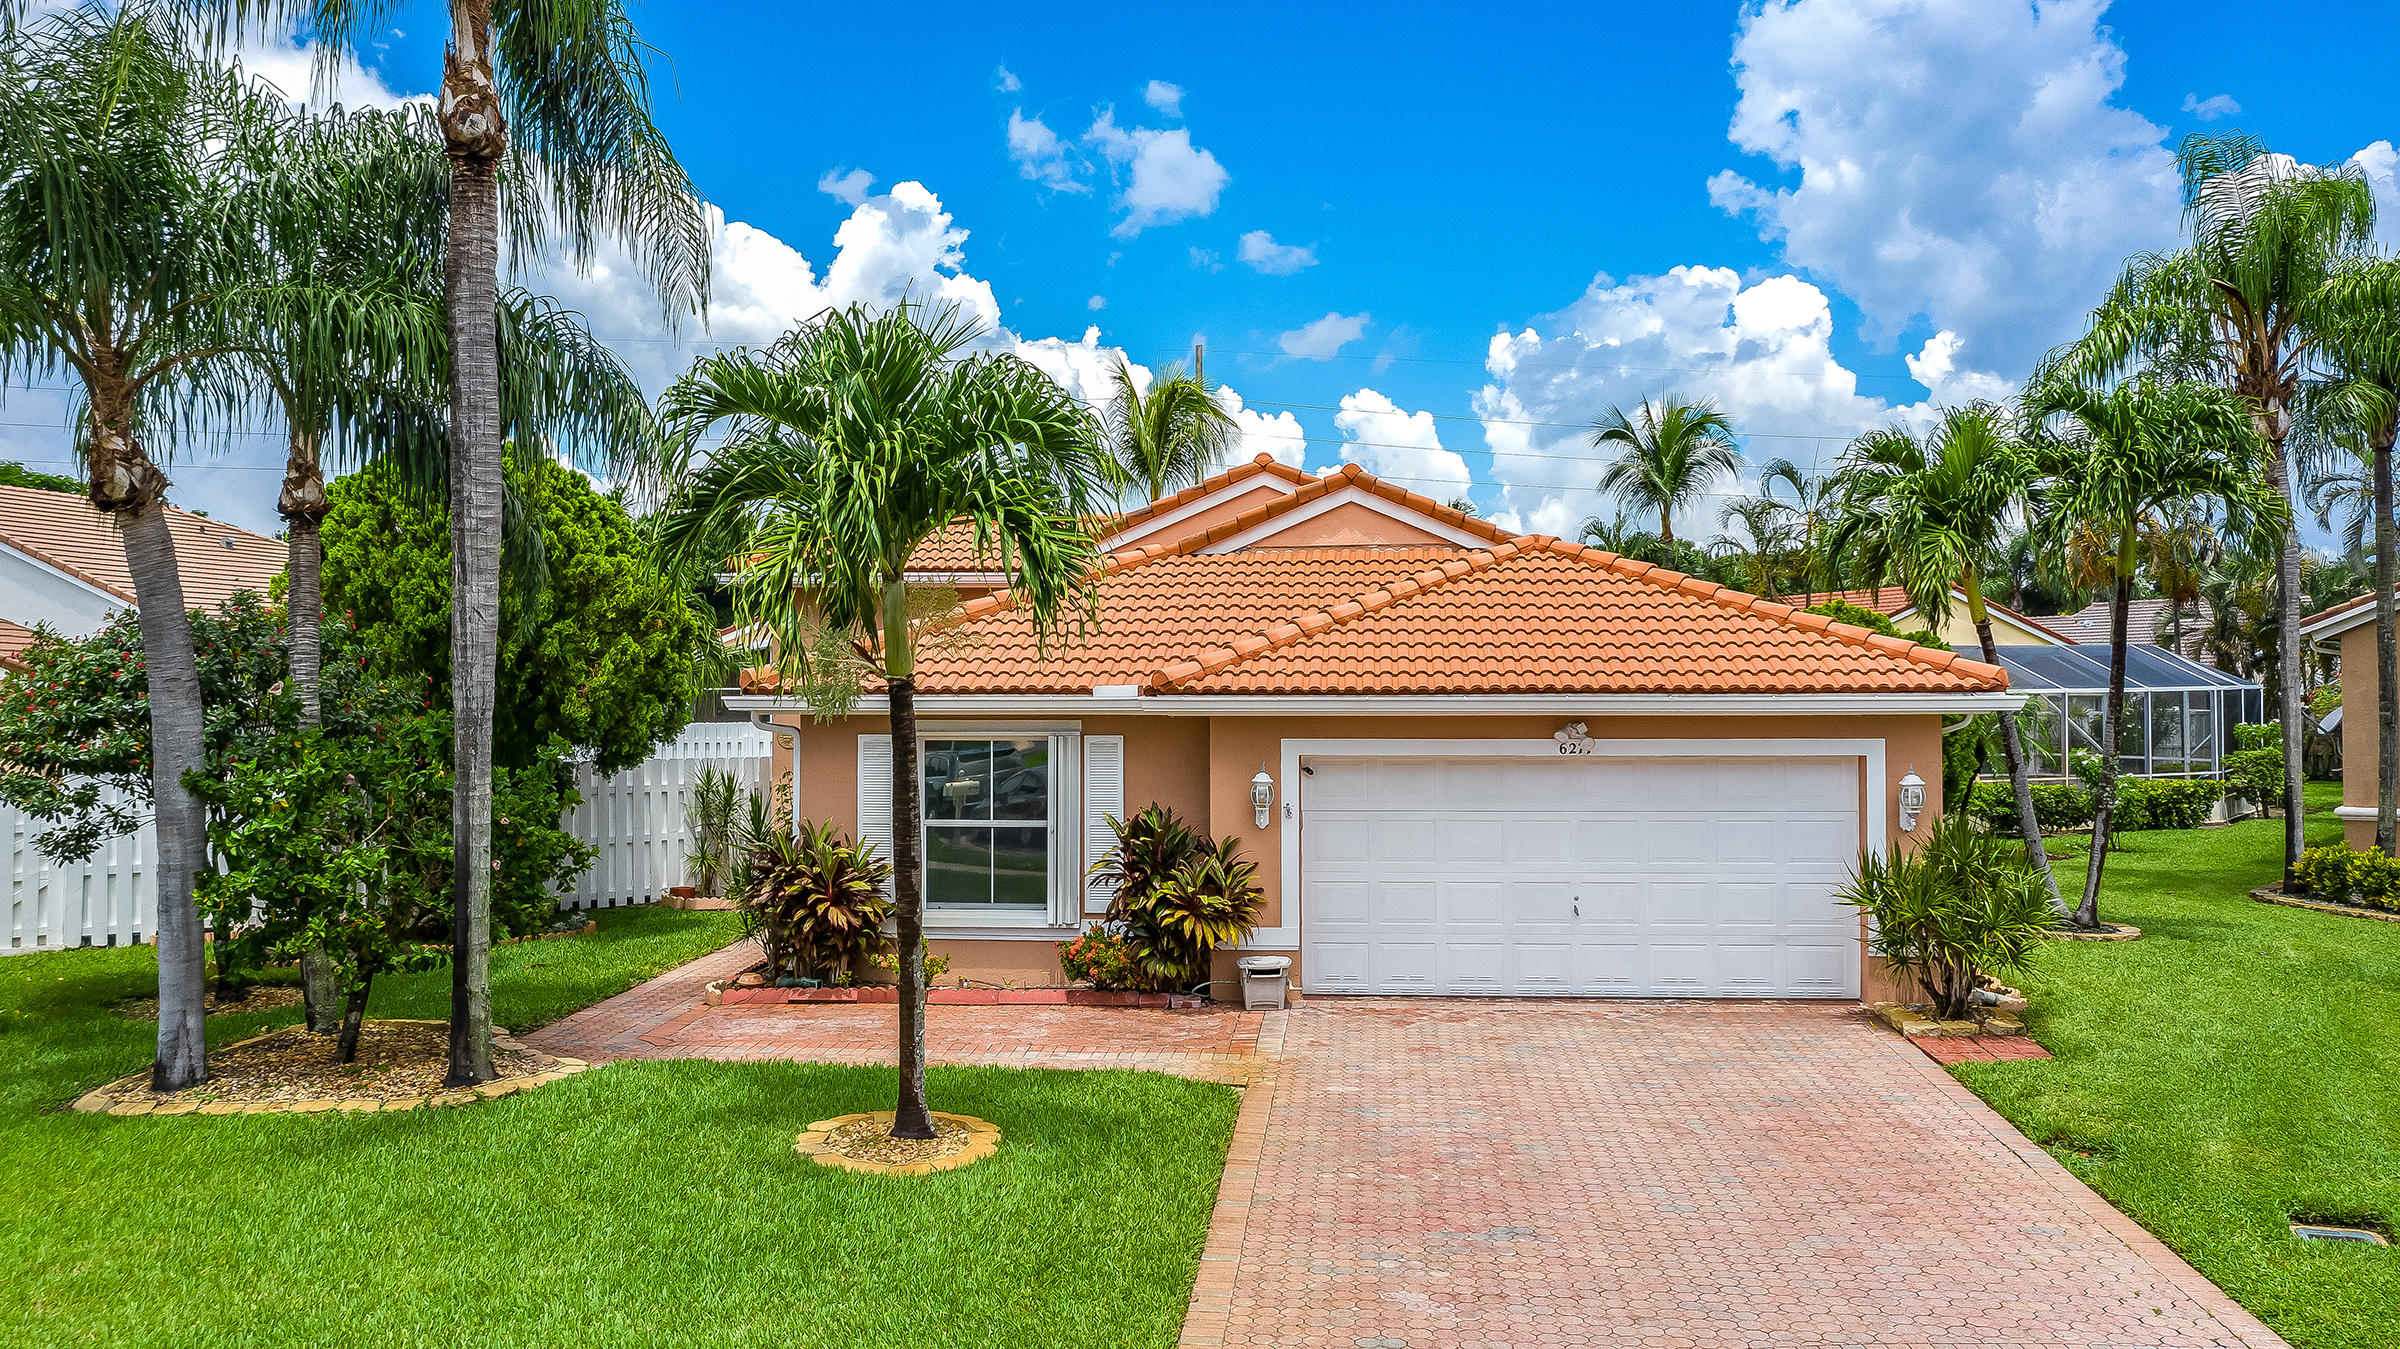 Home for sale in WINSTON TRAILS PAR 1 Lake Worth Florida